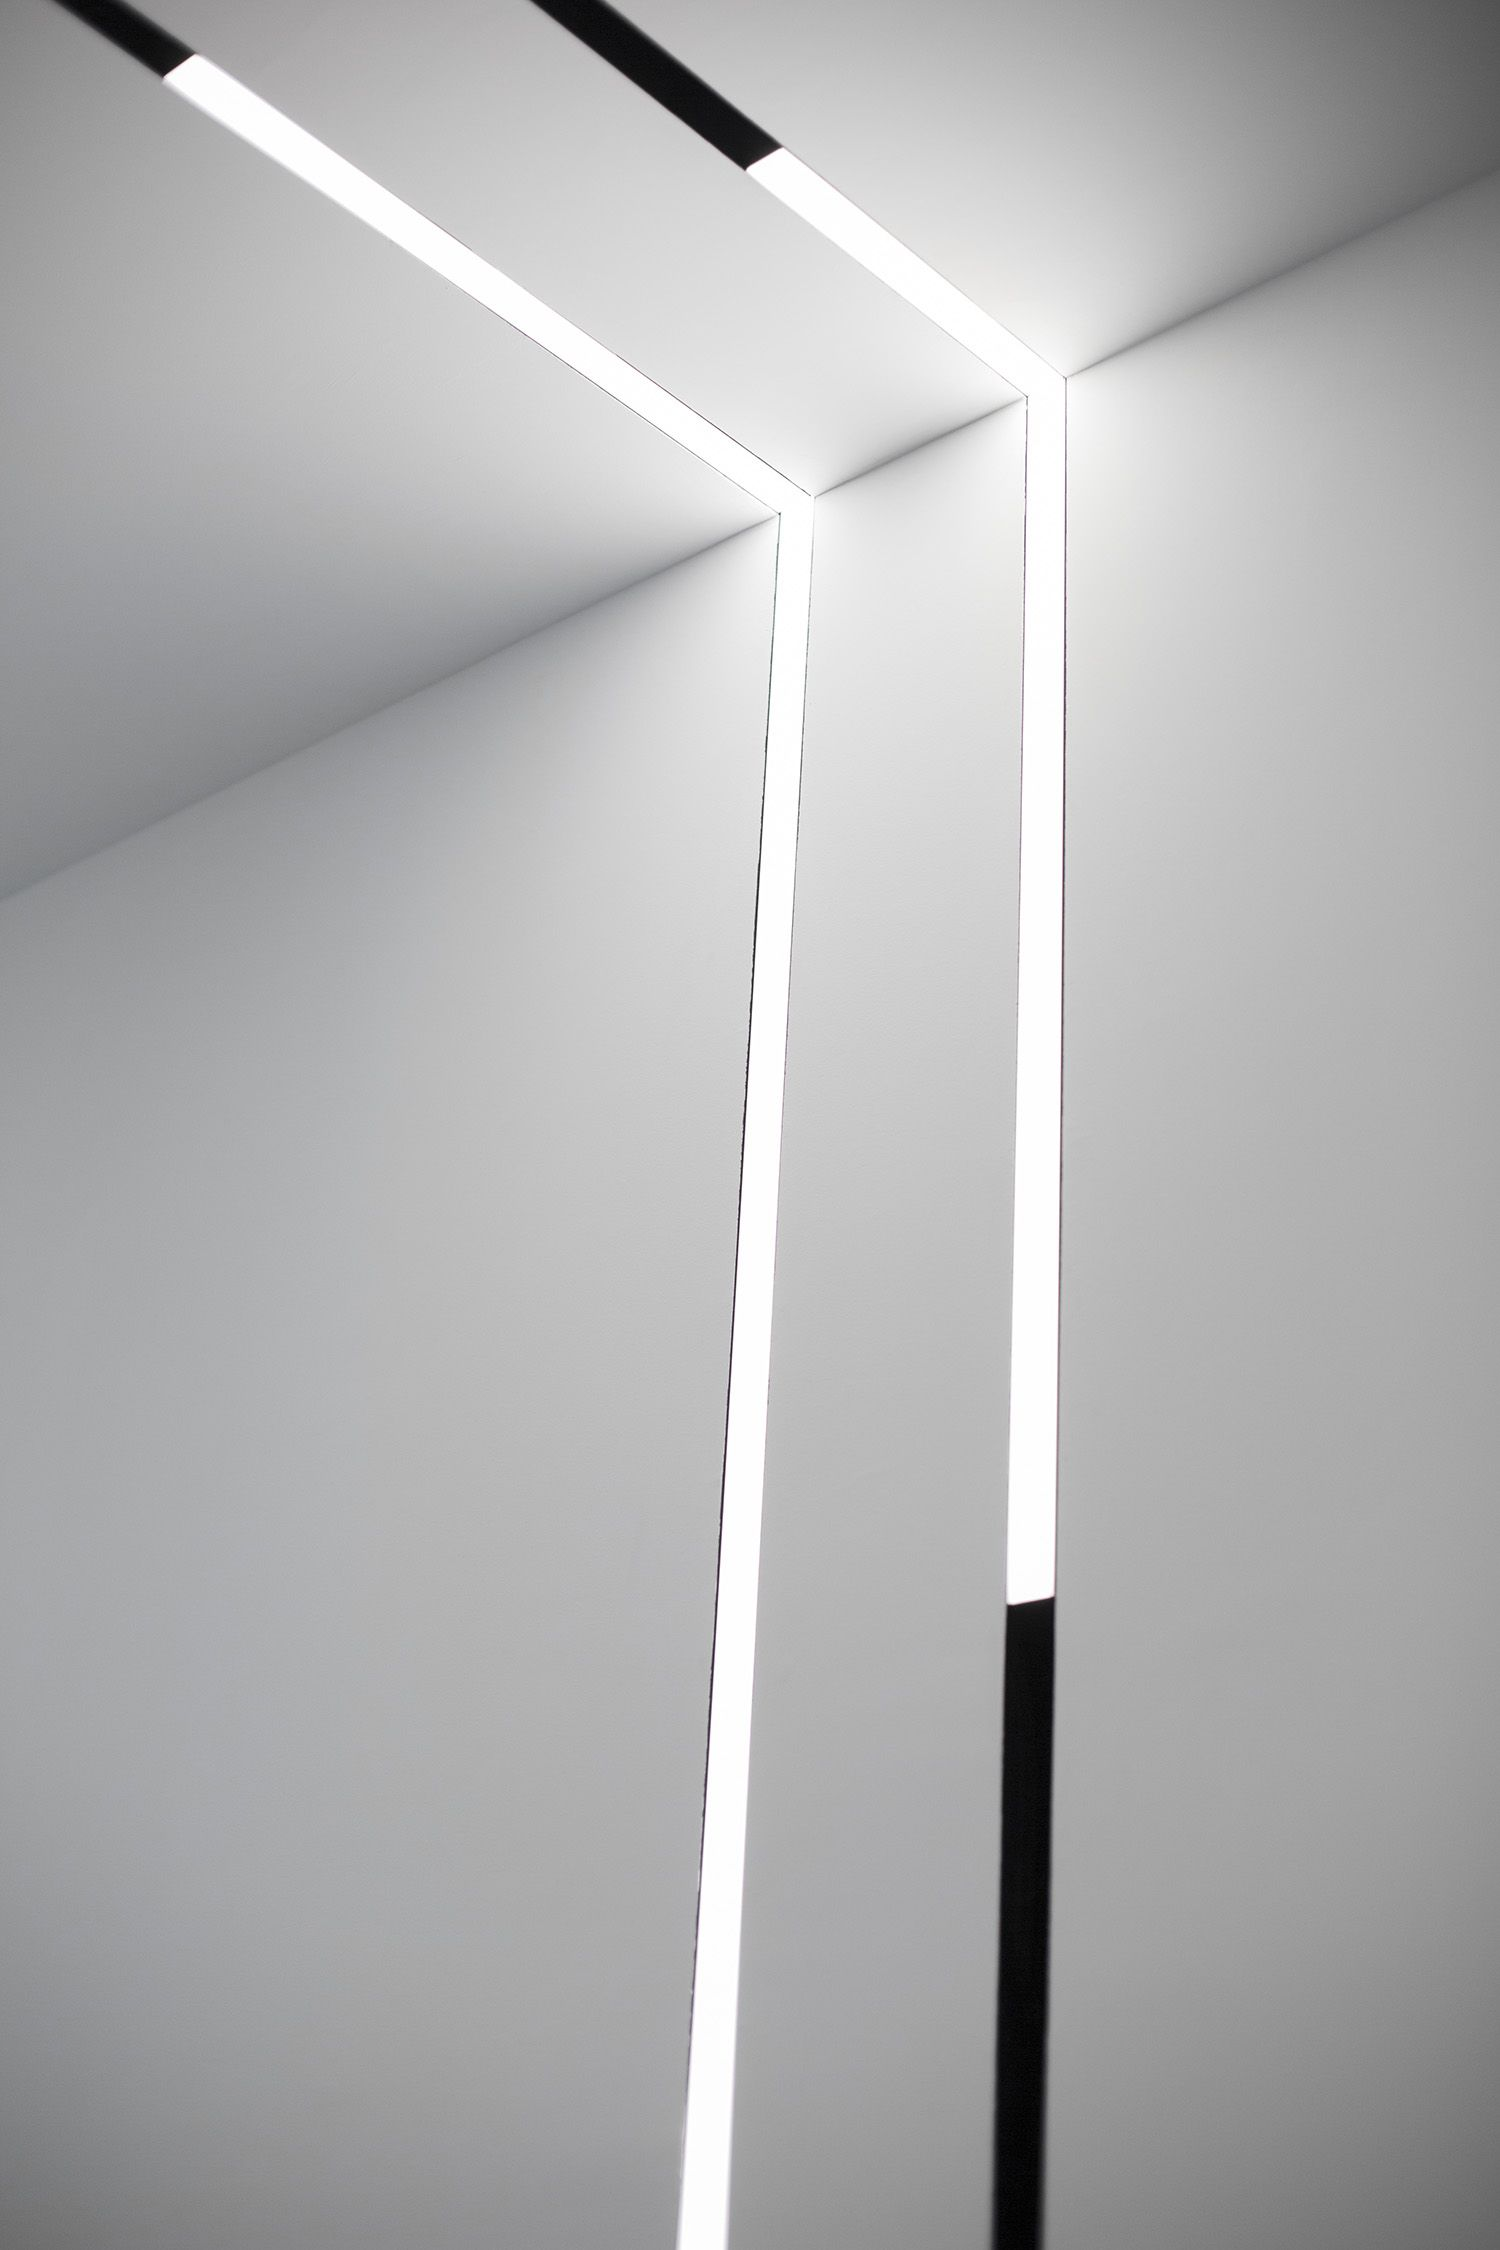 Pin by randall todd on lumiere wall pinterest magnets running flos running magnet track lighting fixtures are as flexible precise and creative as you view our elegantly refined track lighting systems aloadofball Choice Image